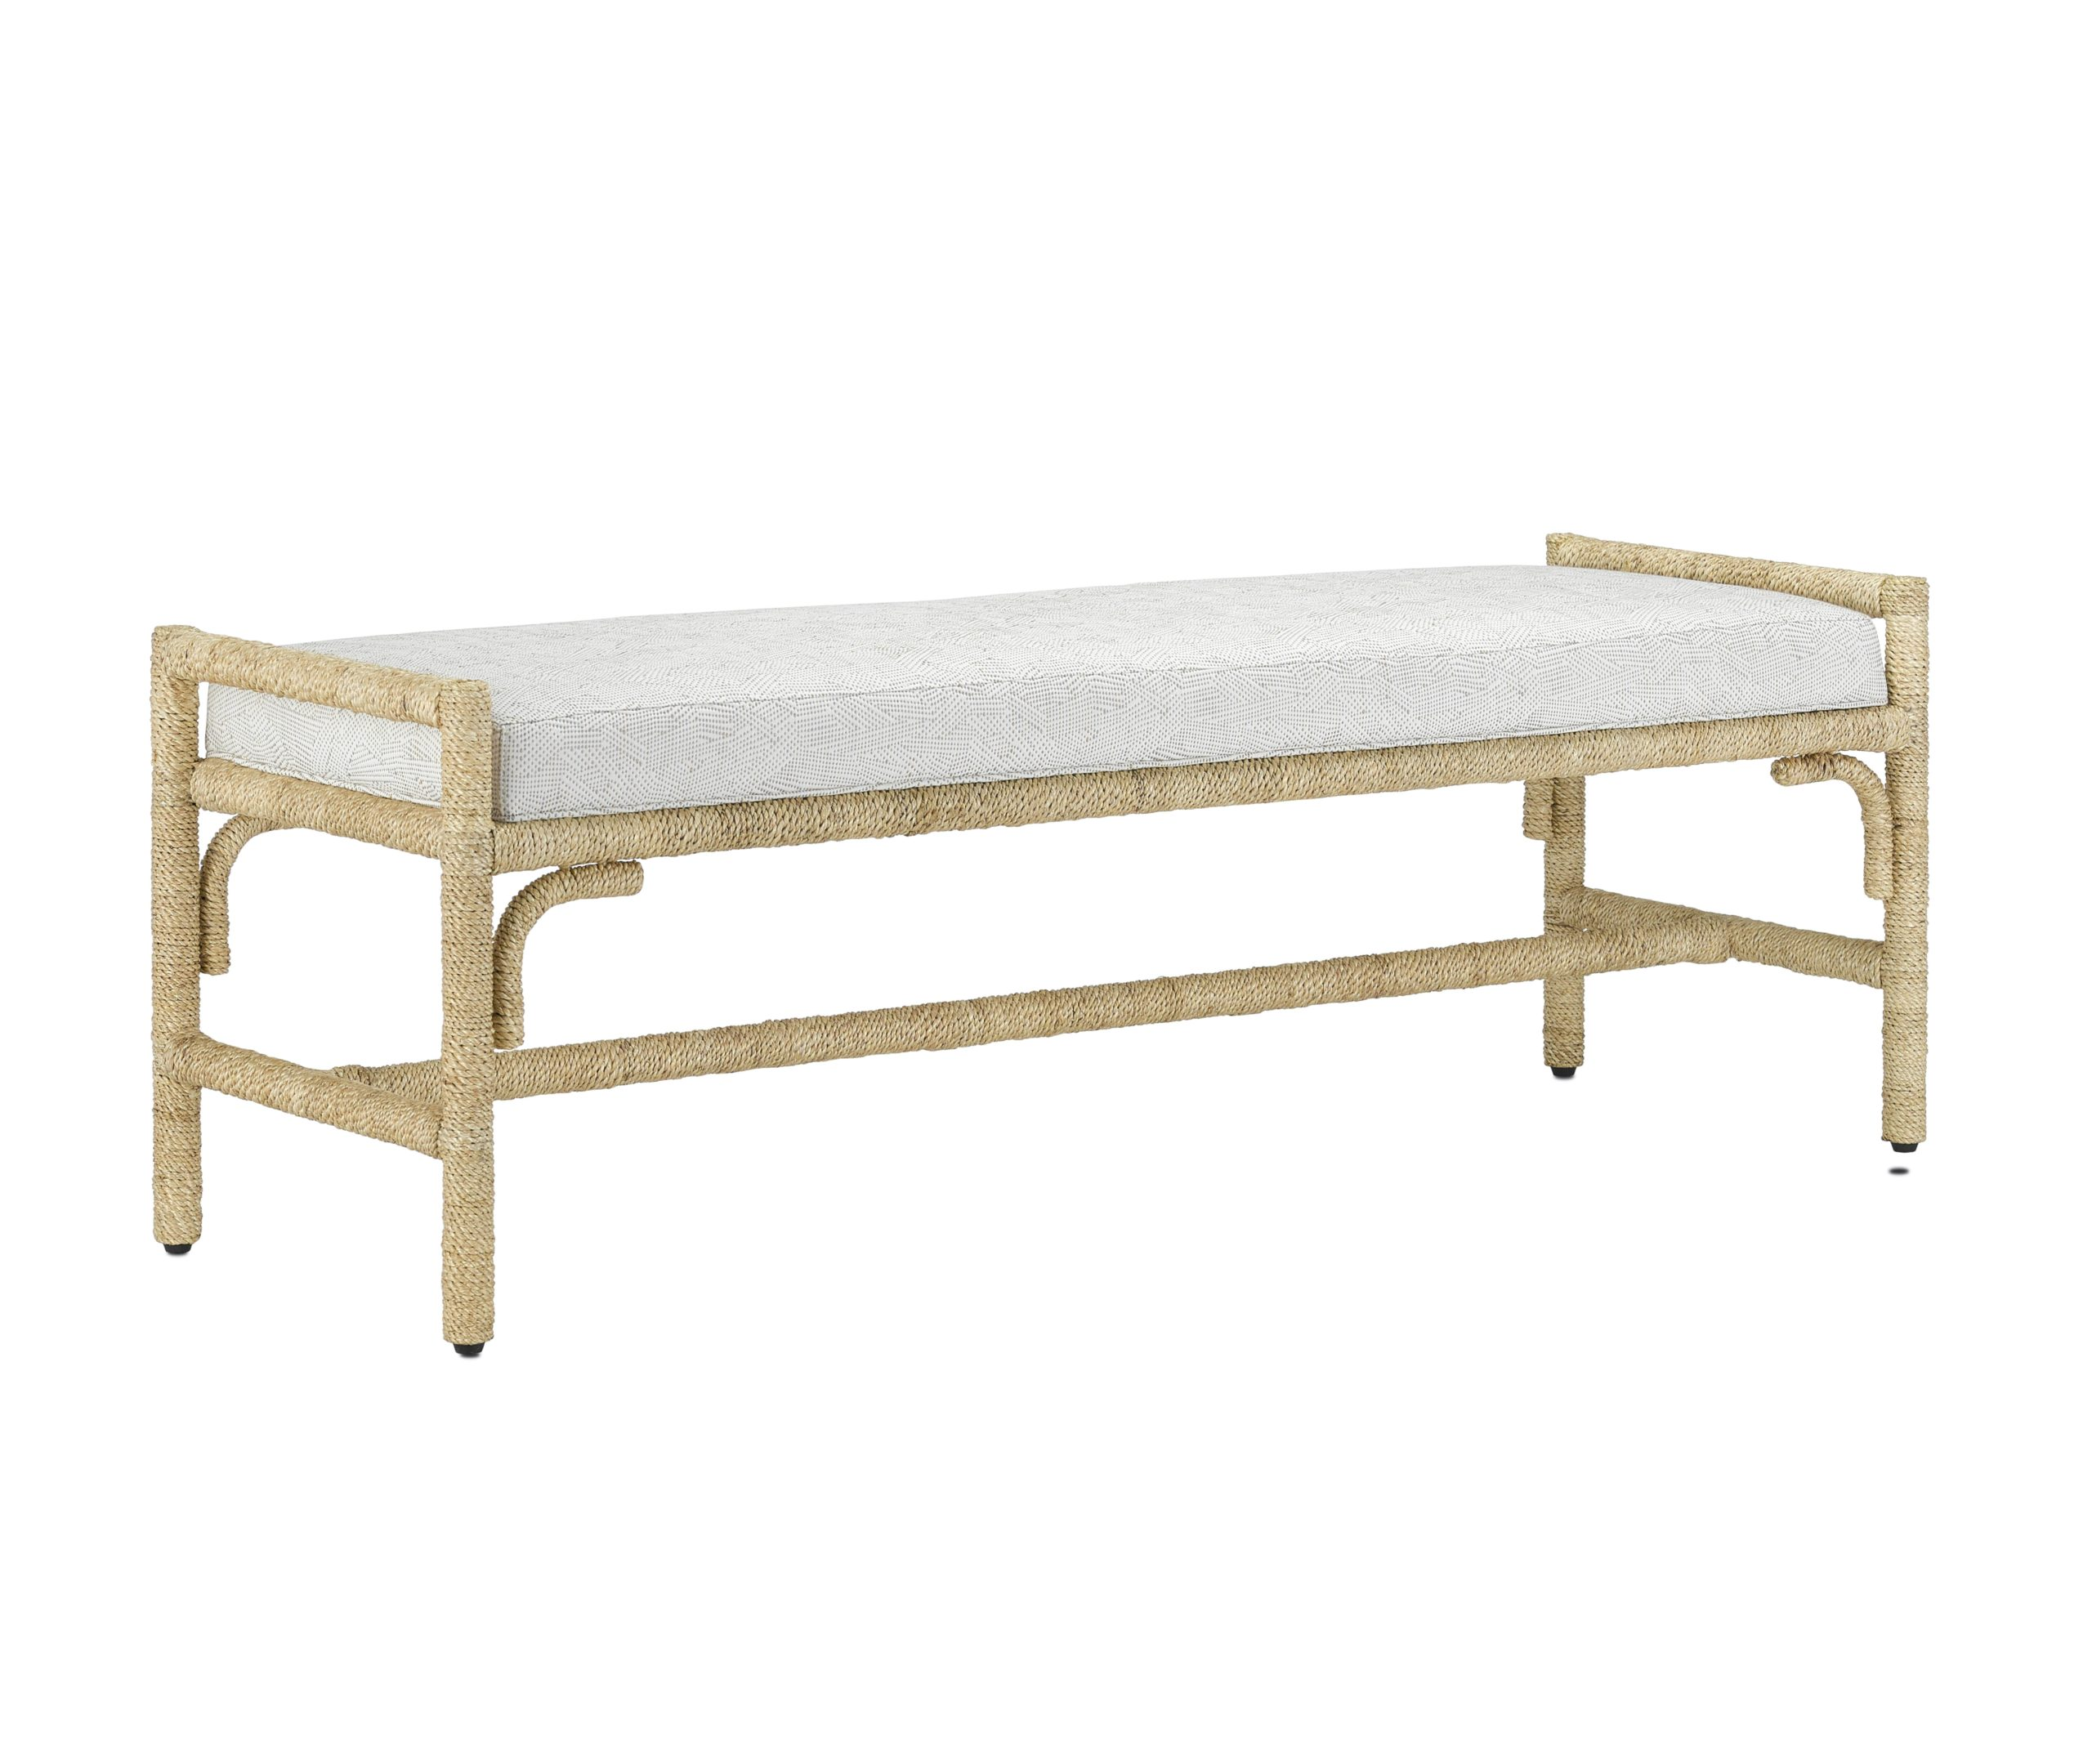 NYDC_WNWN_currey_and_co_products_olisa_pearl_bench_7000-1172_